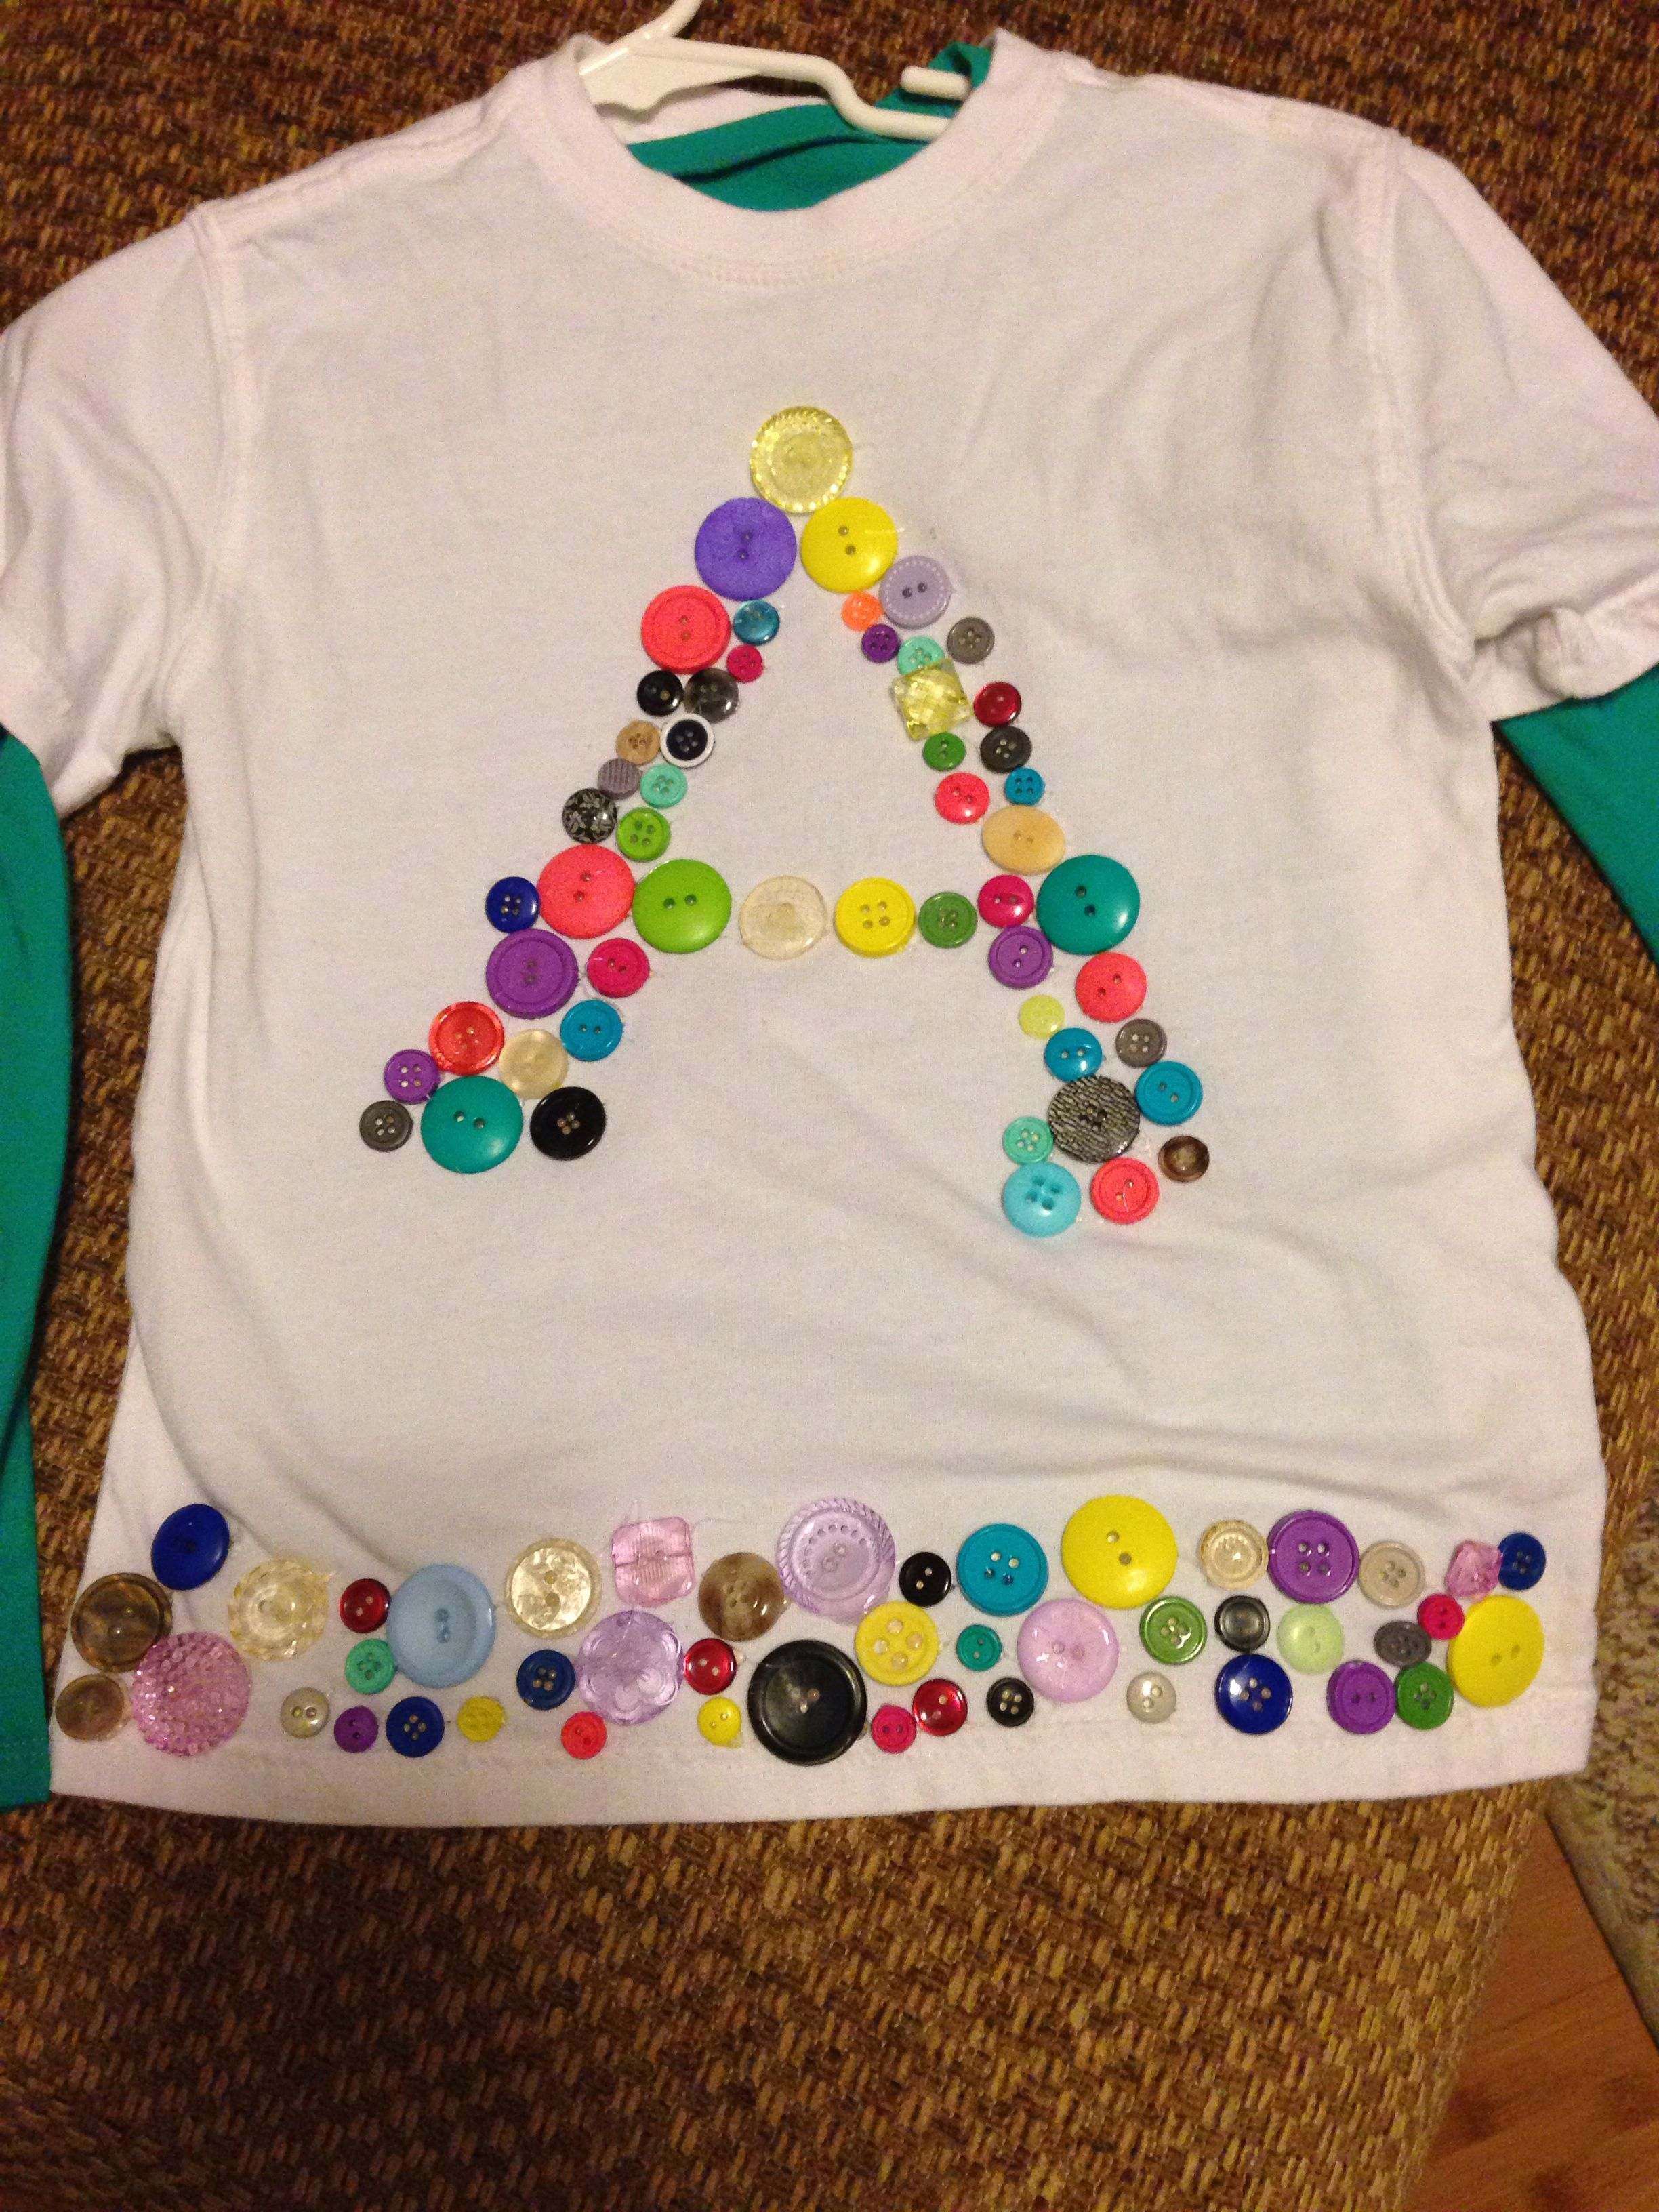 Amelia S Button T Shirt For The 100th Day Of School With Images